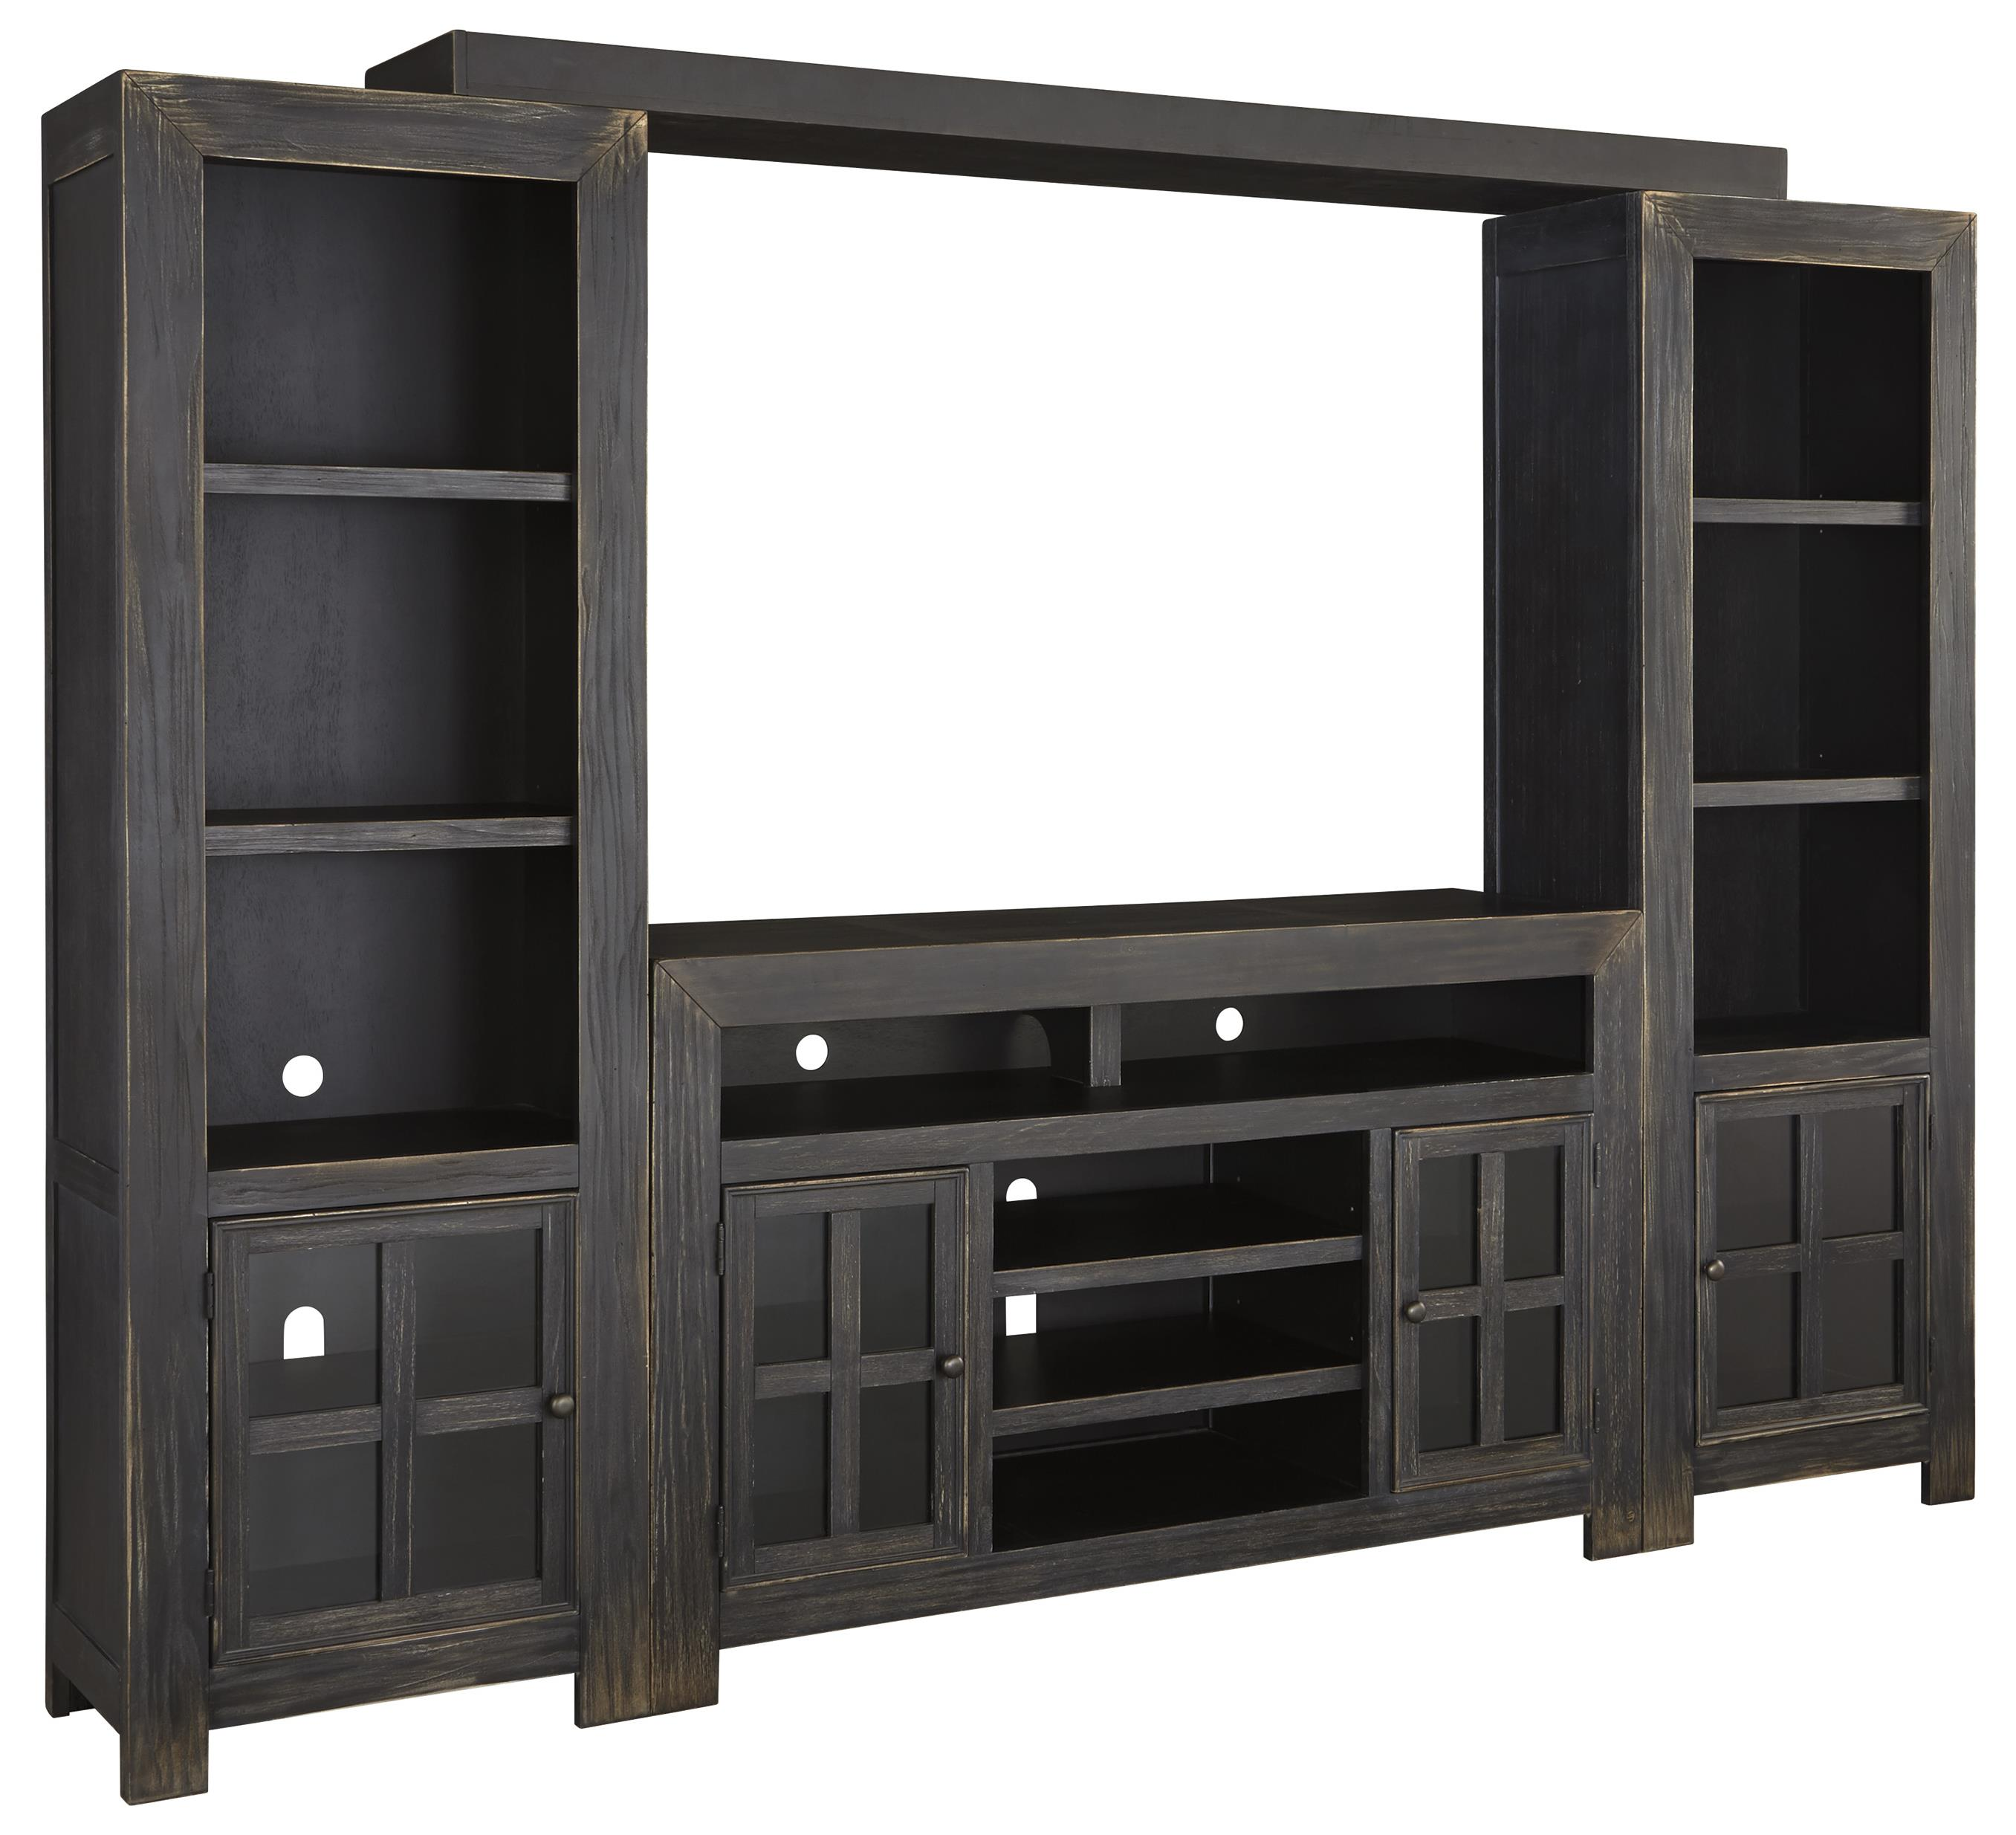 Signature Design by Ashley Gavelston Entertainment Wall Unit w